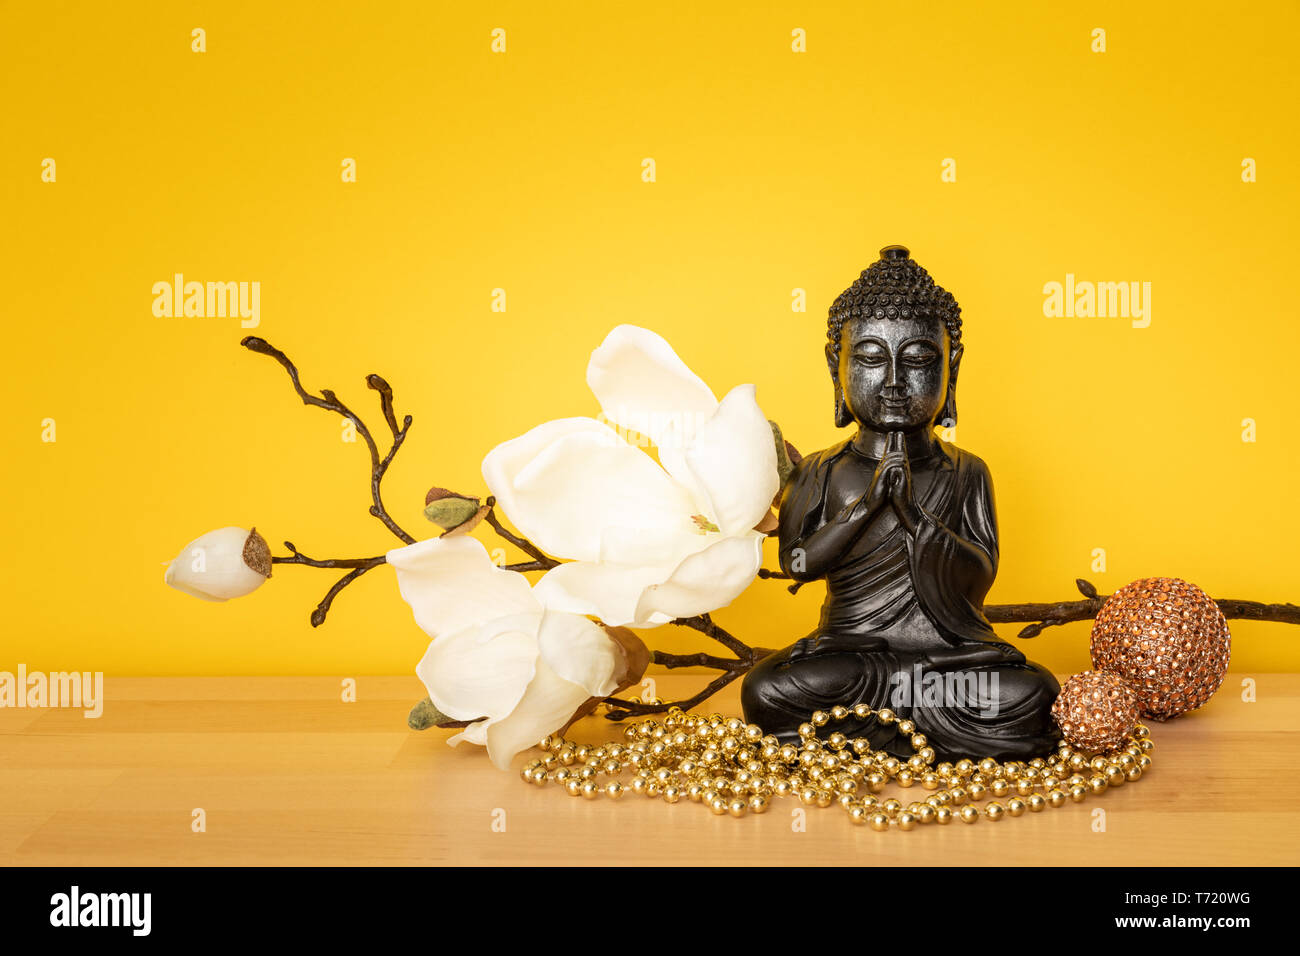 buddha statue sign for peace and wisdom - Stock Image